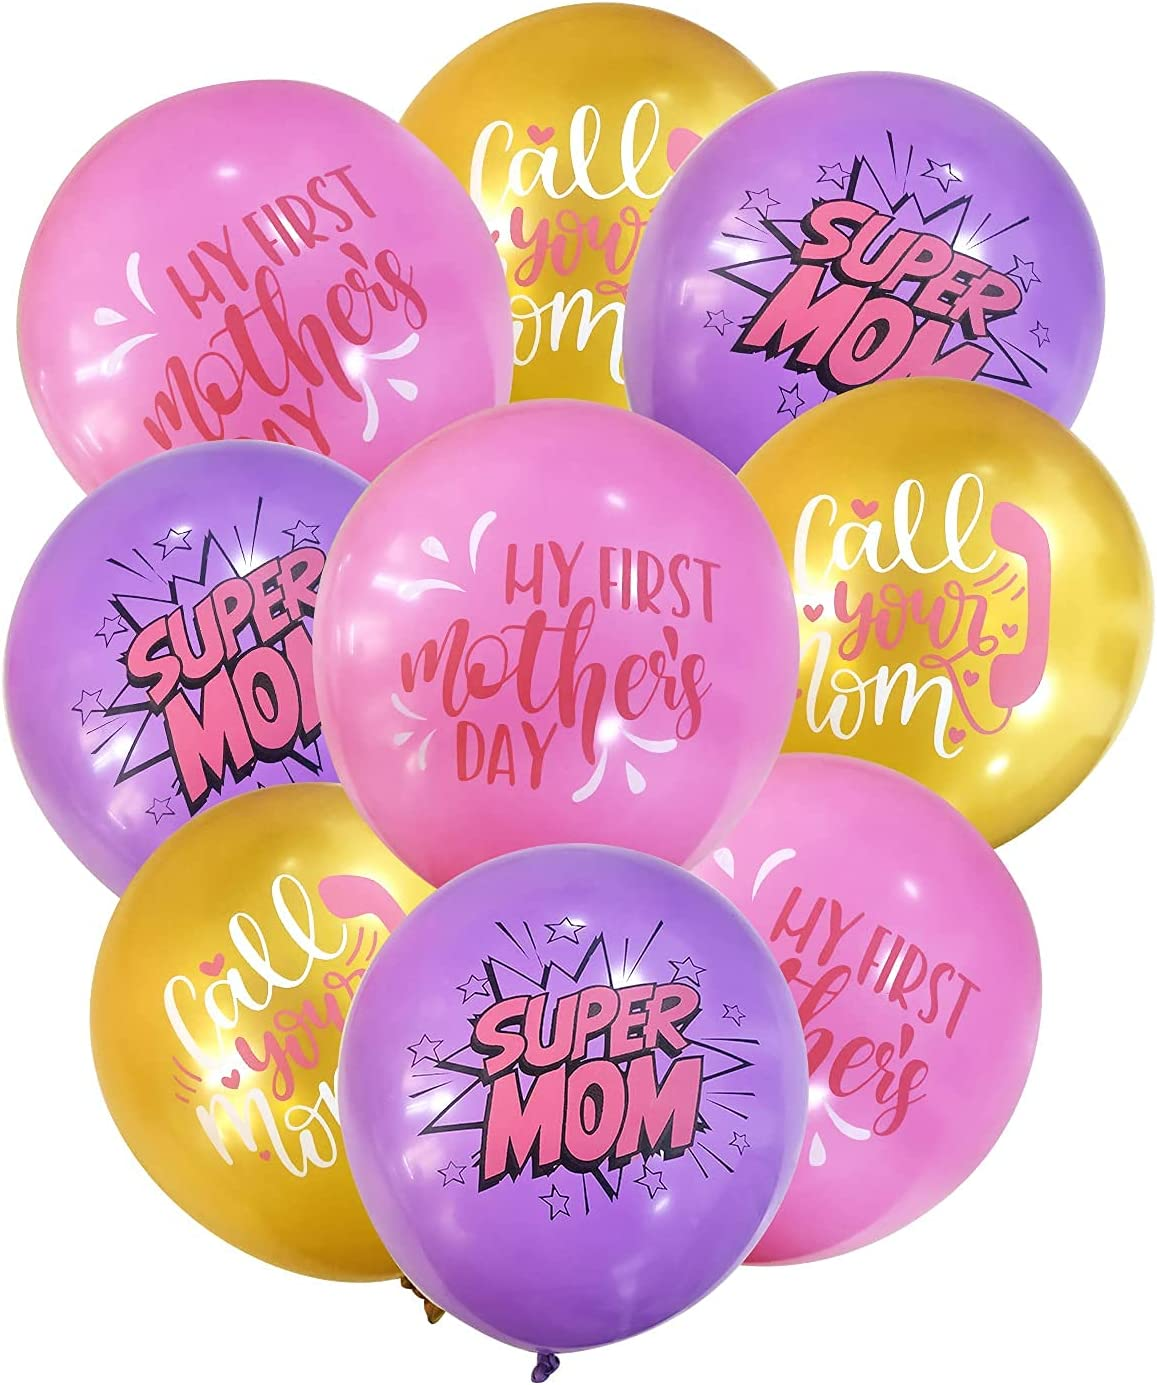 18PCS Happy Mother's Day Party Decorations Latex Balloons - Super Mom Call You Mom, Ever Party Supplies Favors Wall Decor Balloon for Mummy Day